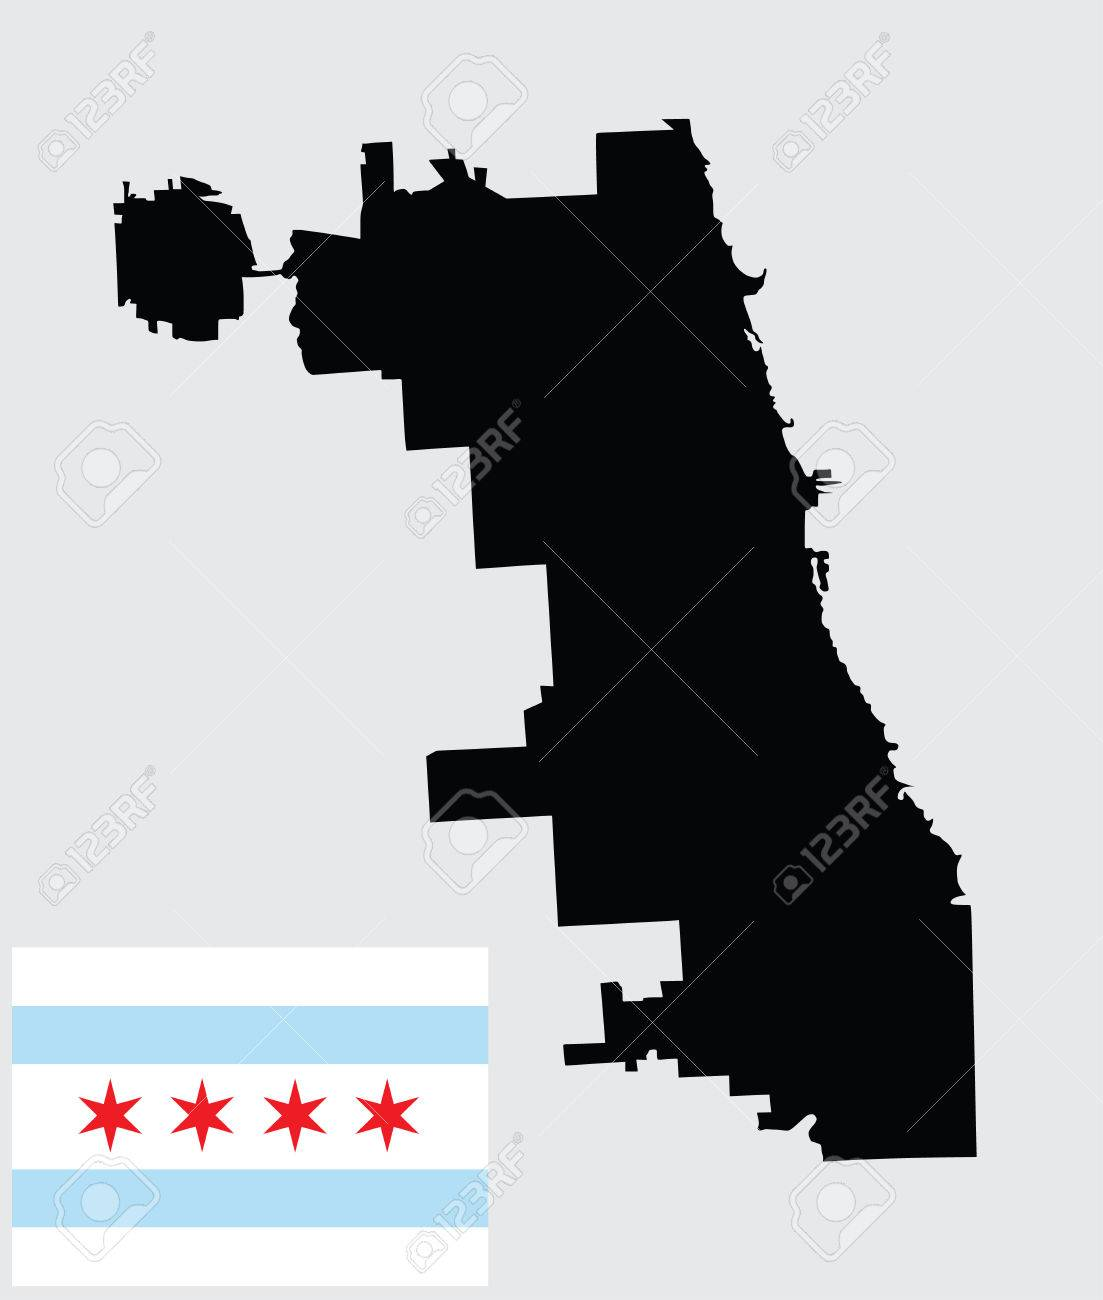 Chicago City map vector map isolated on